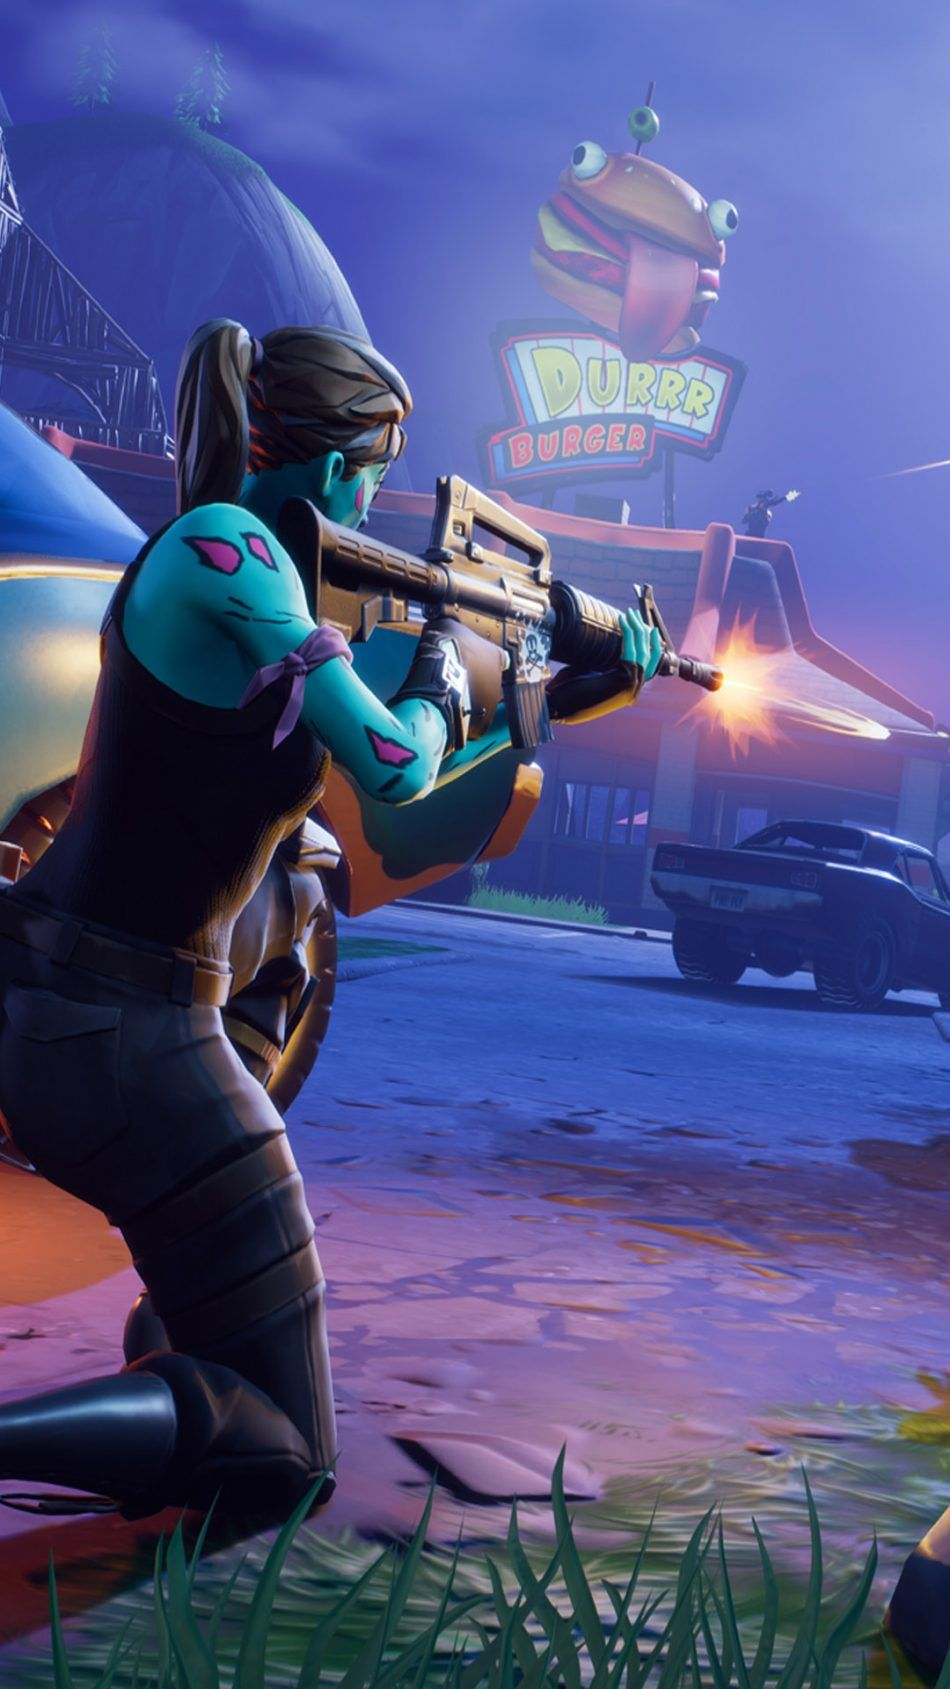 Fortnite Battle Royale Female Player Firing 4k Ultra Hd Mobile Wallpaper Fortnite Best Gaming Wallpapers Mobile Wallpaper